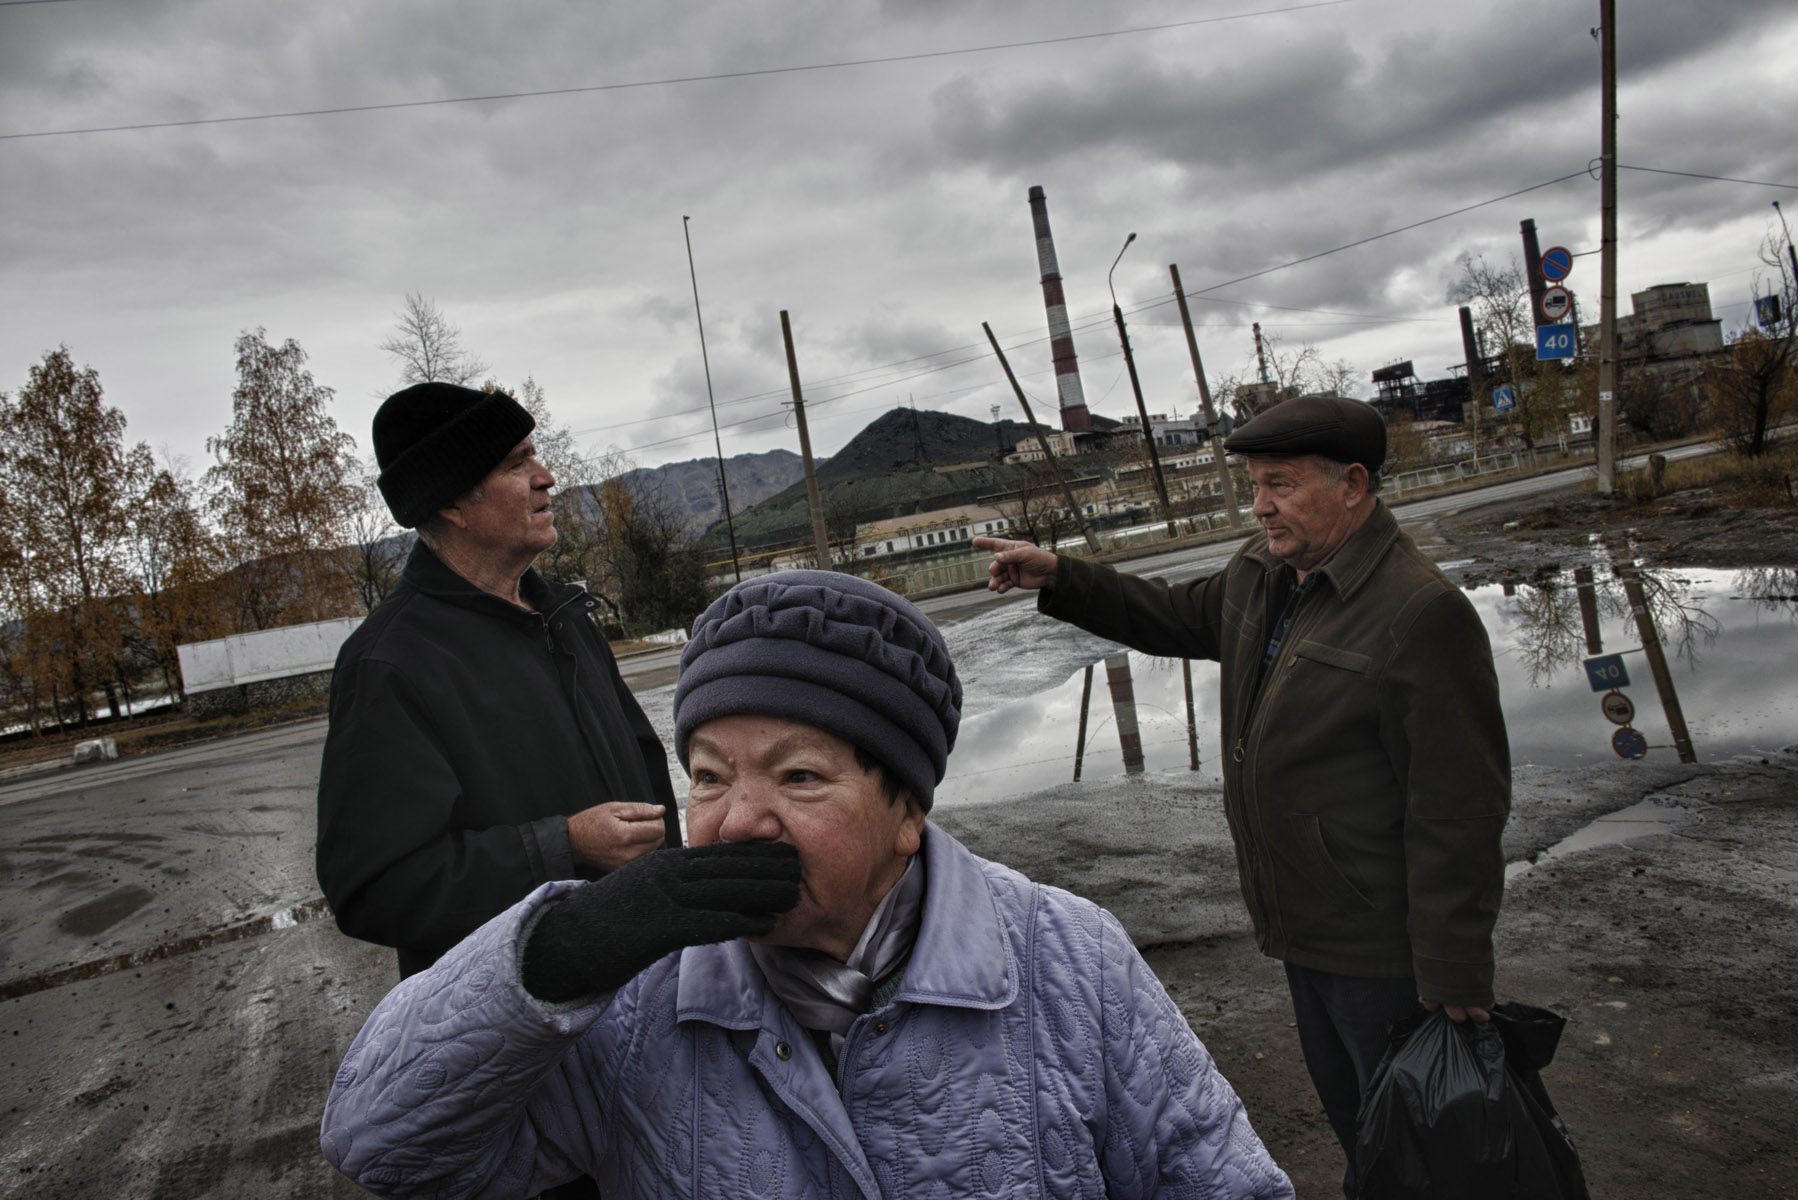 Pierpaolo Mittica, Karabash inhabitants, Syngenta Photo Award